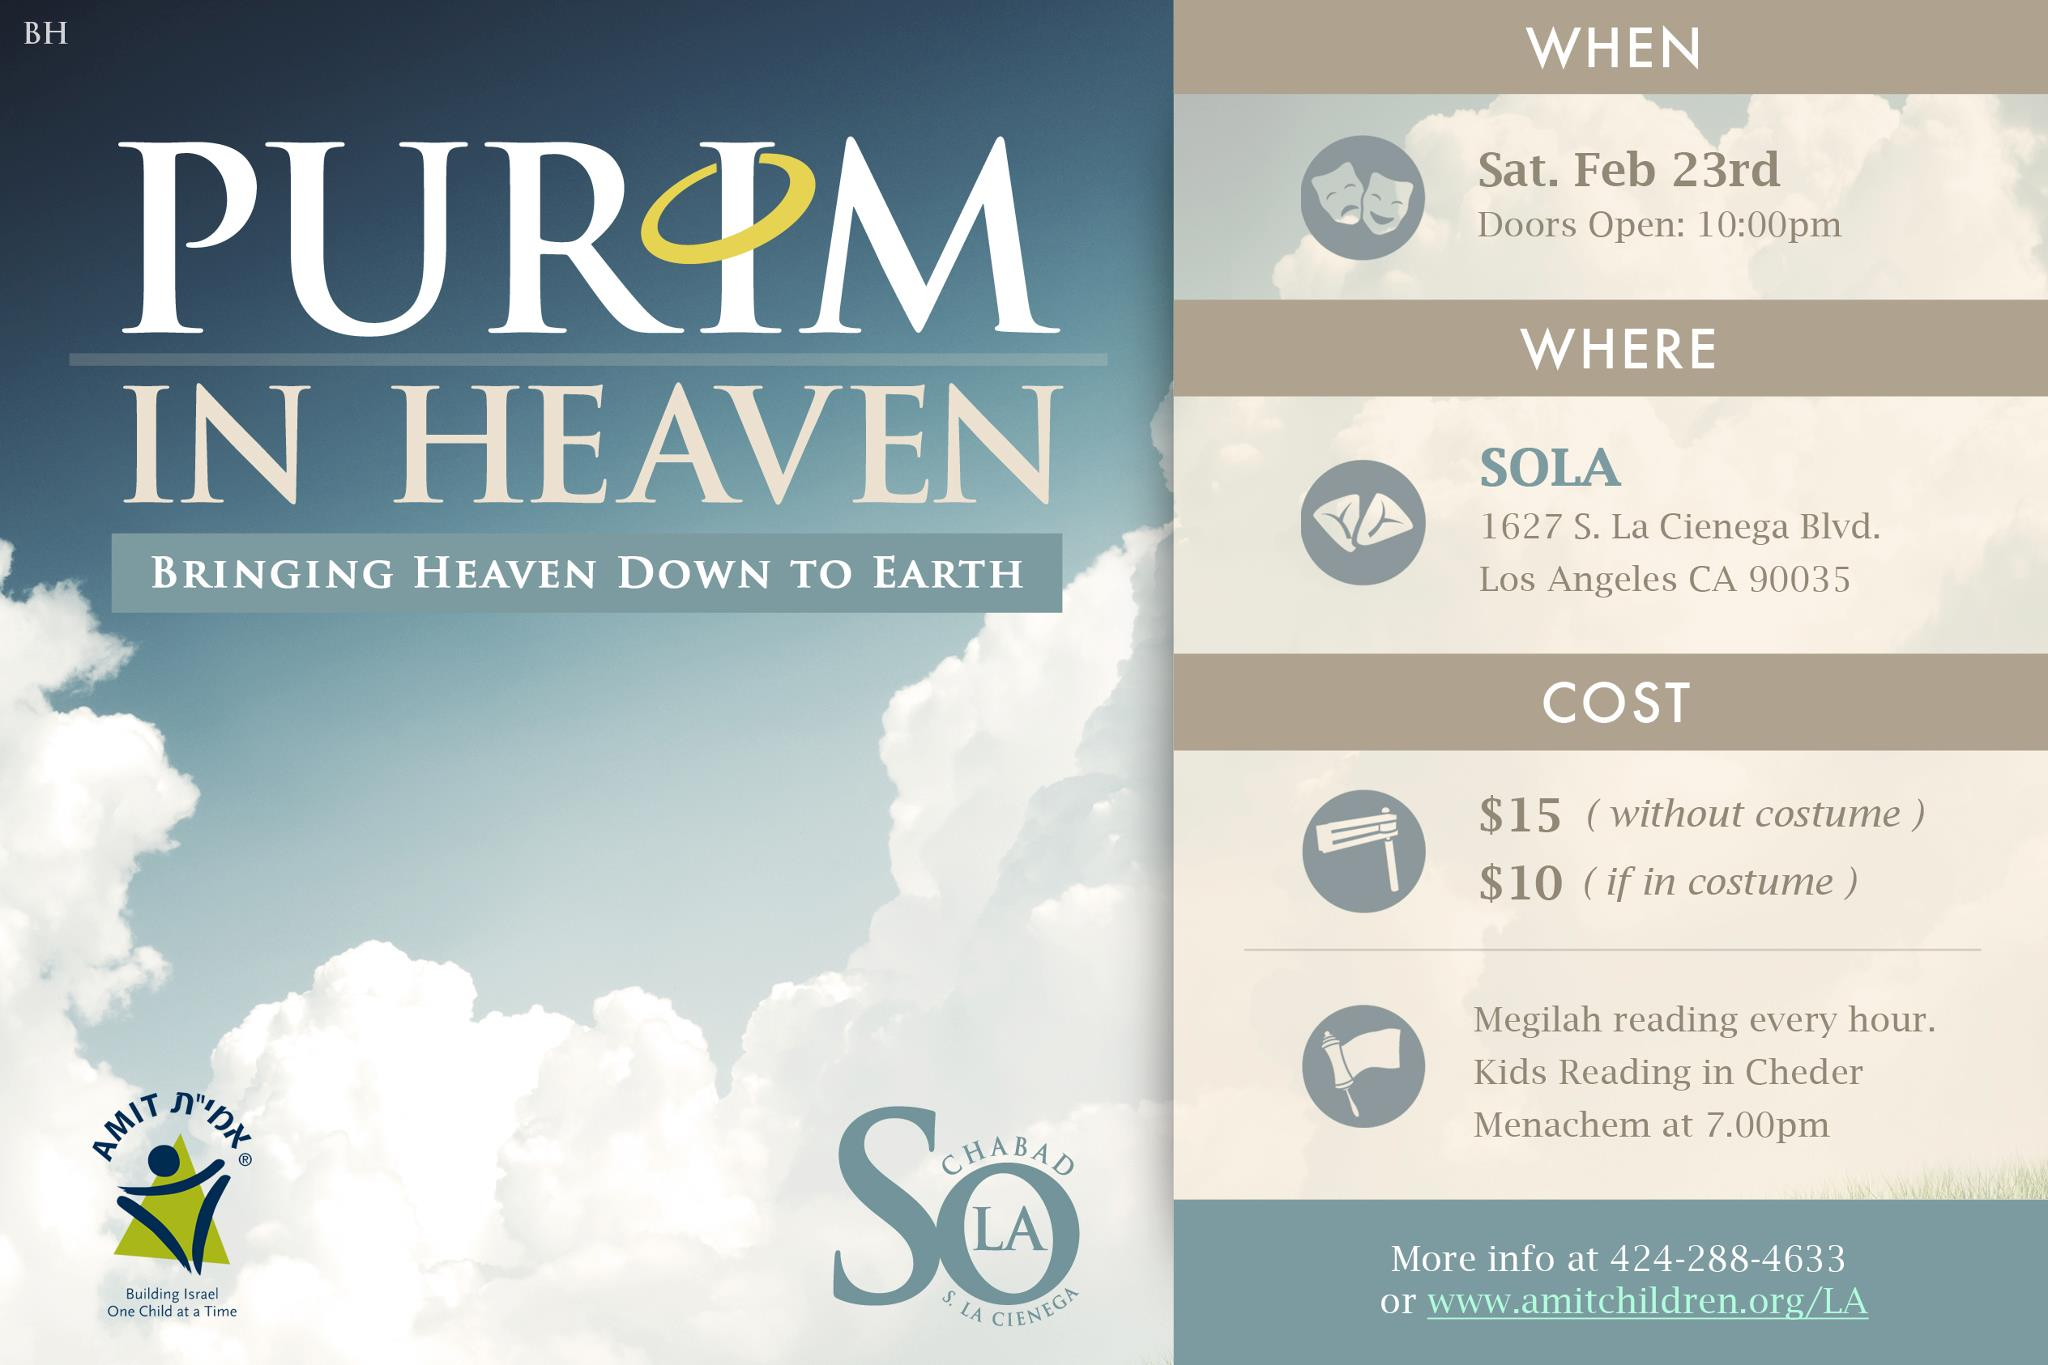 purim in heaven